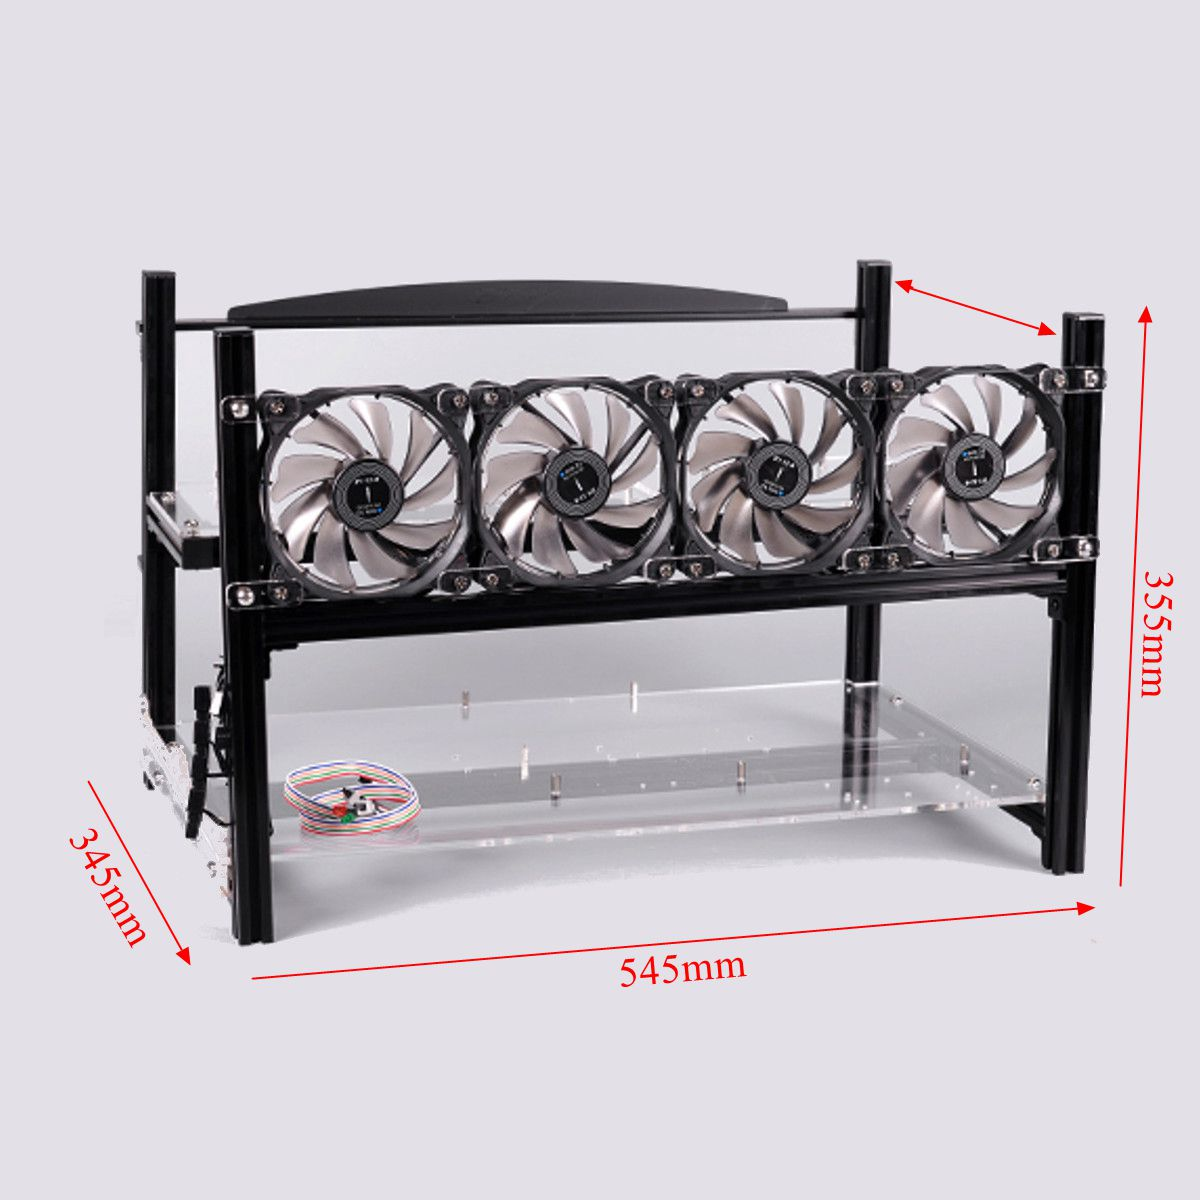 6 GPU Mining Frame Case with 4 fans